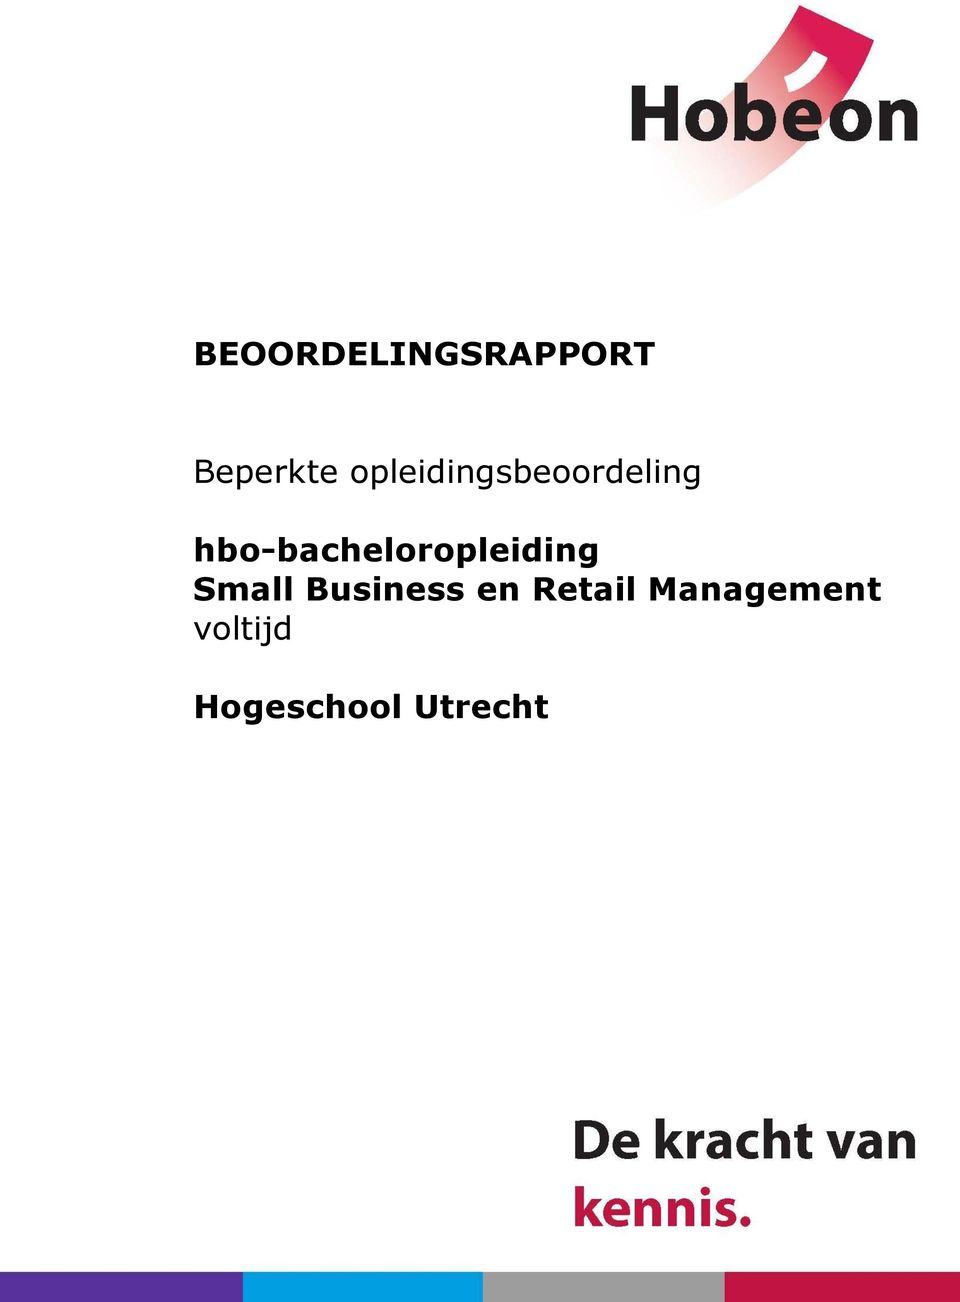 hbo-bacheloropleiding Small